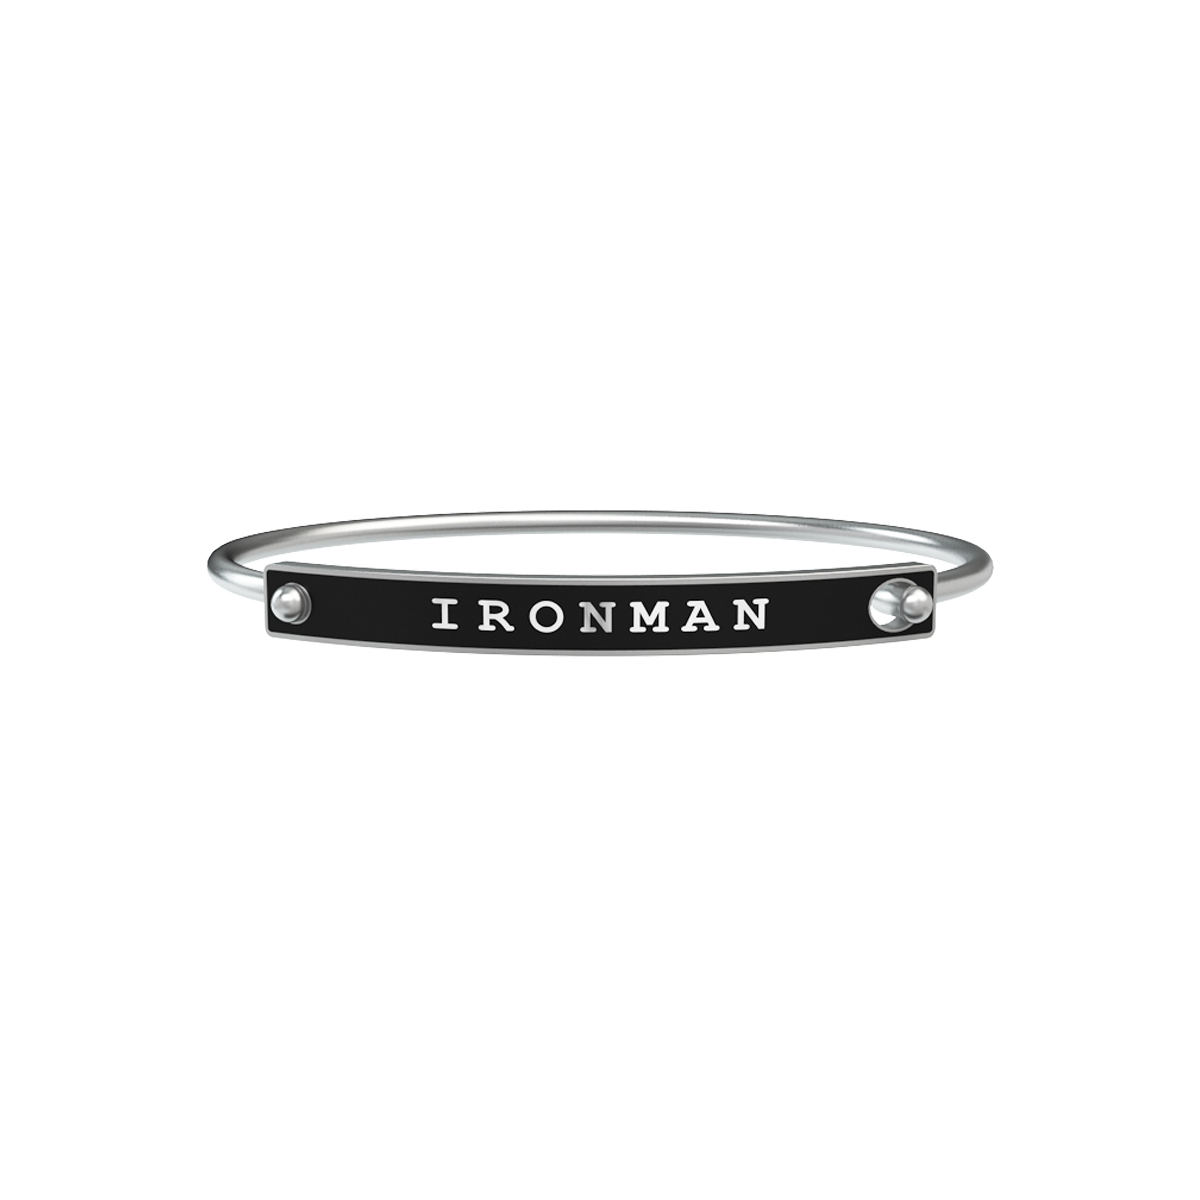 Kidult life uomo collection ref 731178 Ironman